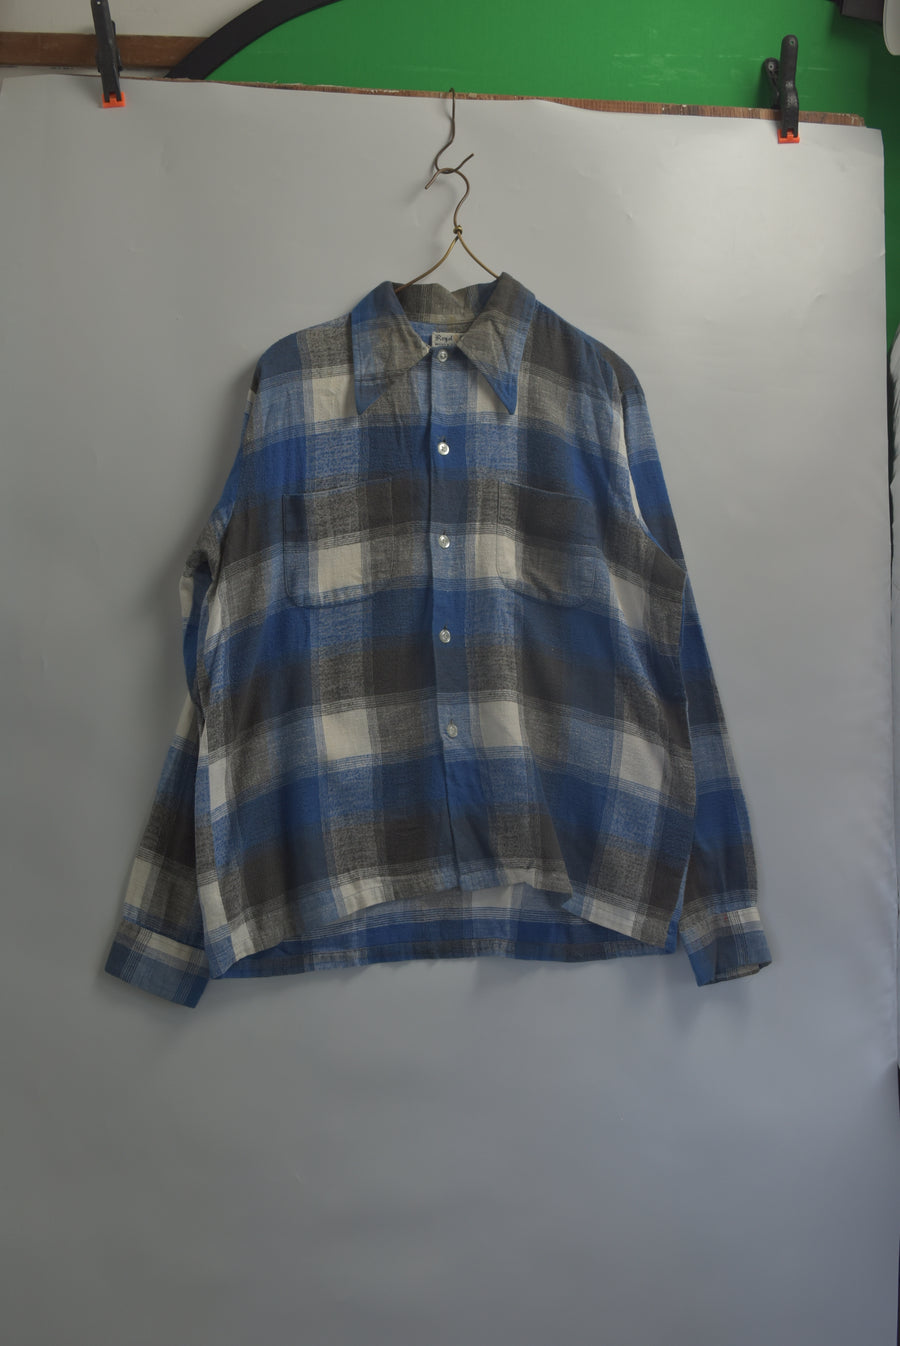 Vintage / 70s Cotton Nel Shirt / 8173 - 0703 58.5